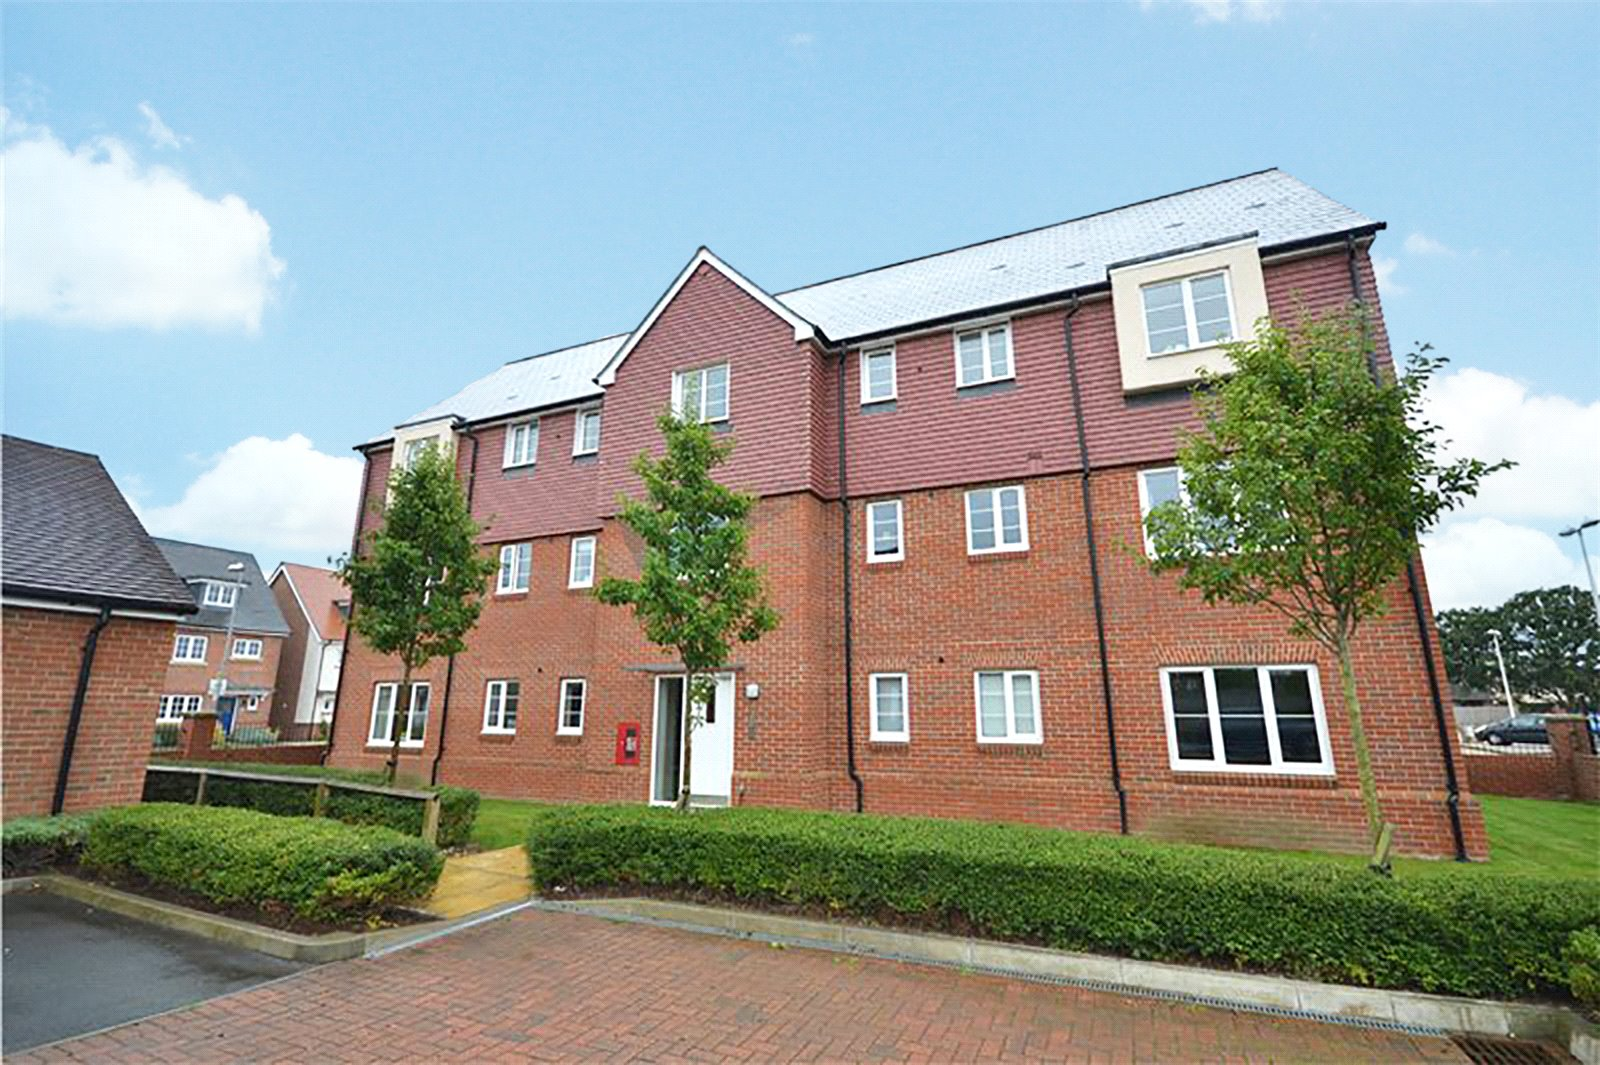 2 Bedrooms Apartment Flat for sale in Sparrowhawk Way, Bracknell, Berkshire, RG12